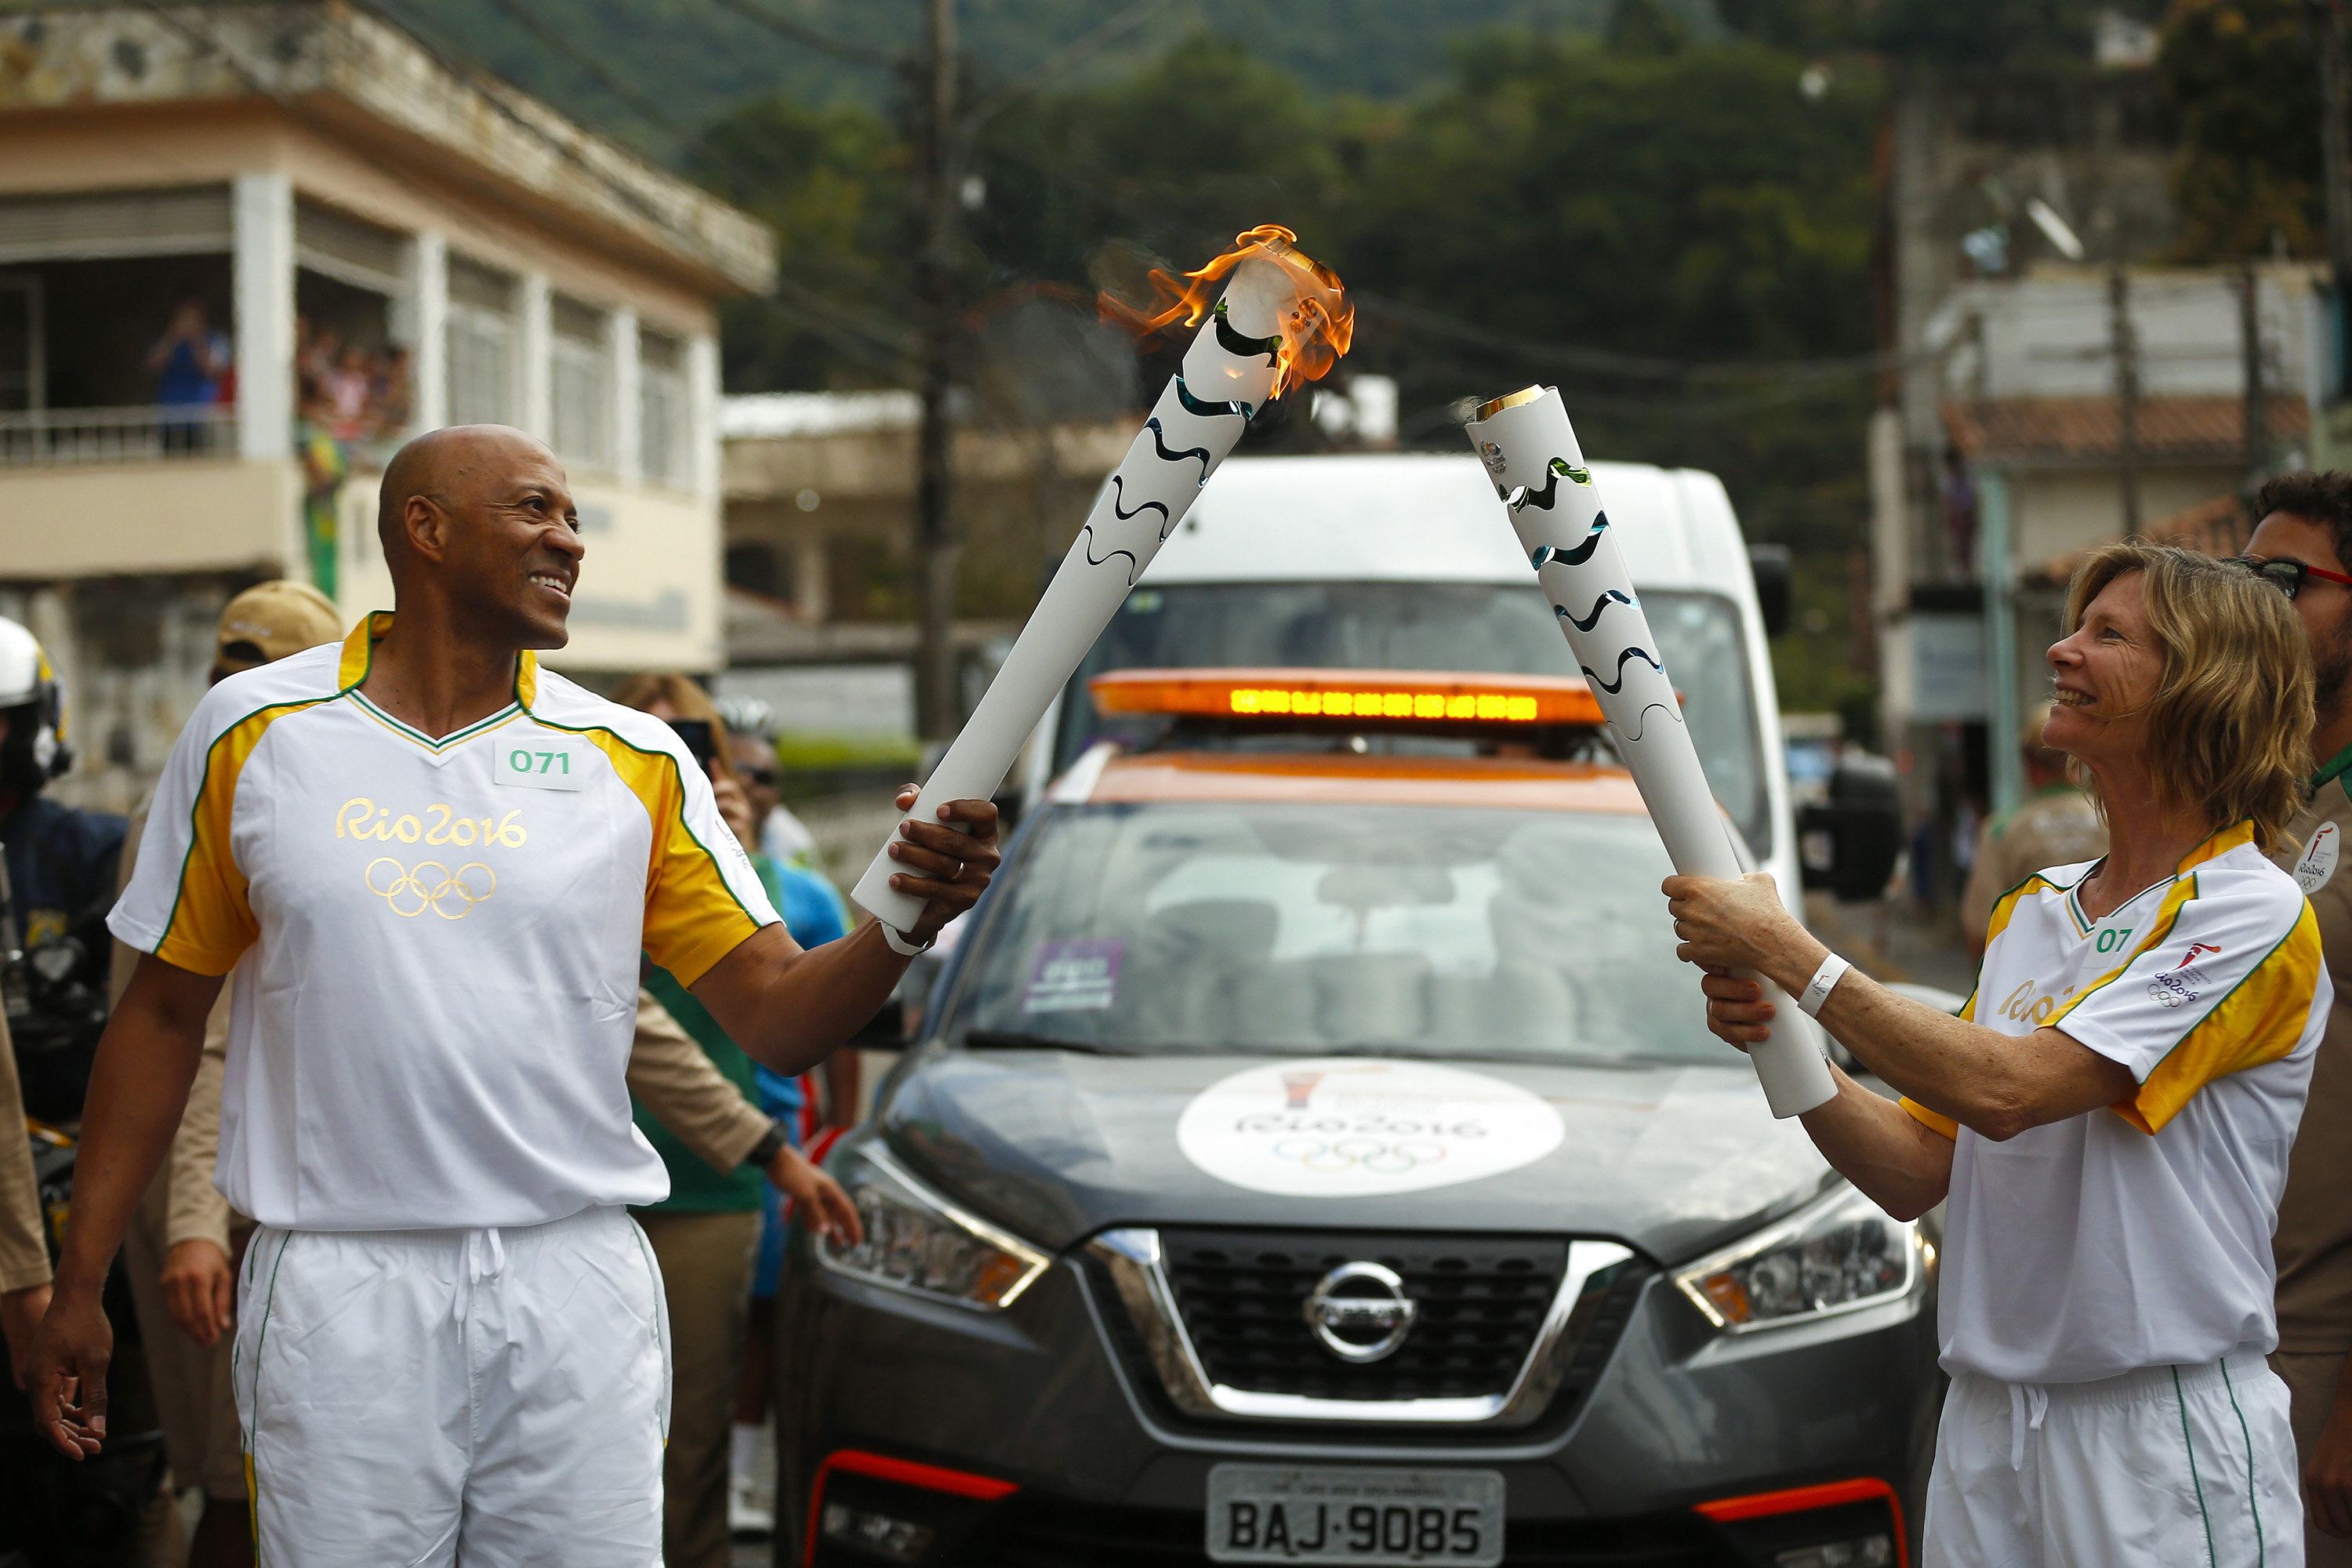 How Do They Keep The Olympic Torch Lit The Rio Olympics Flame Will